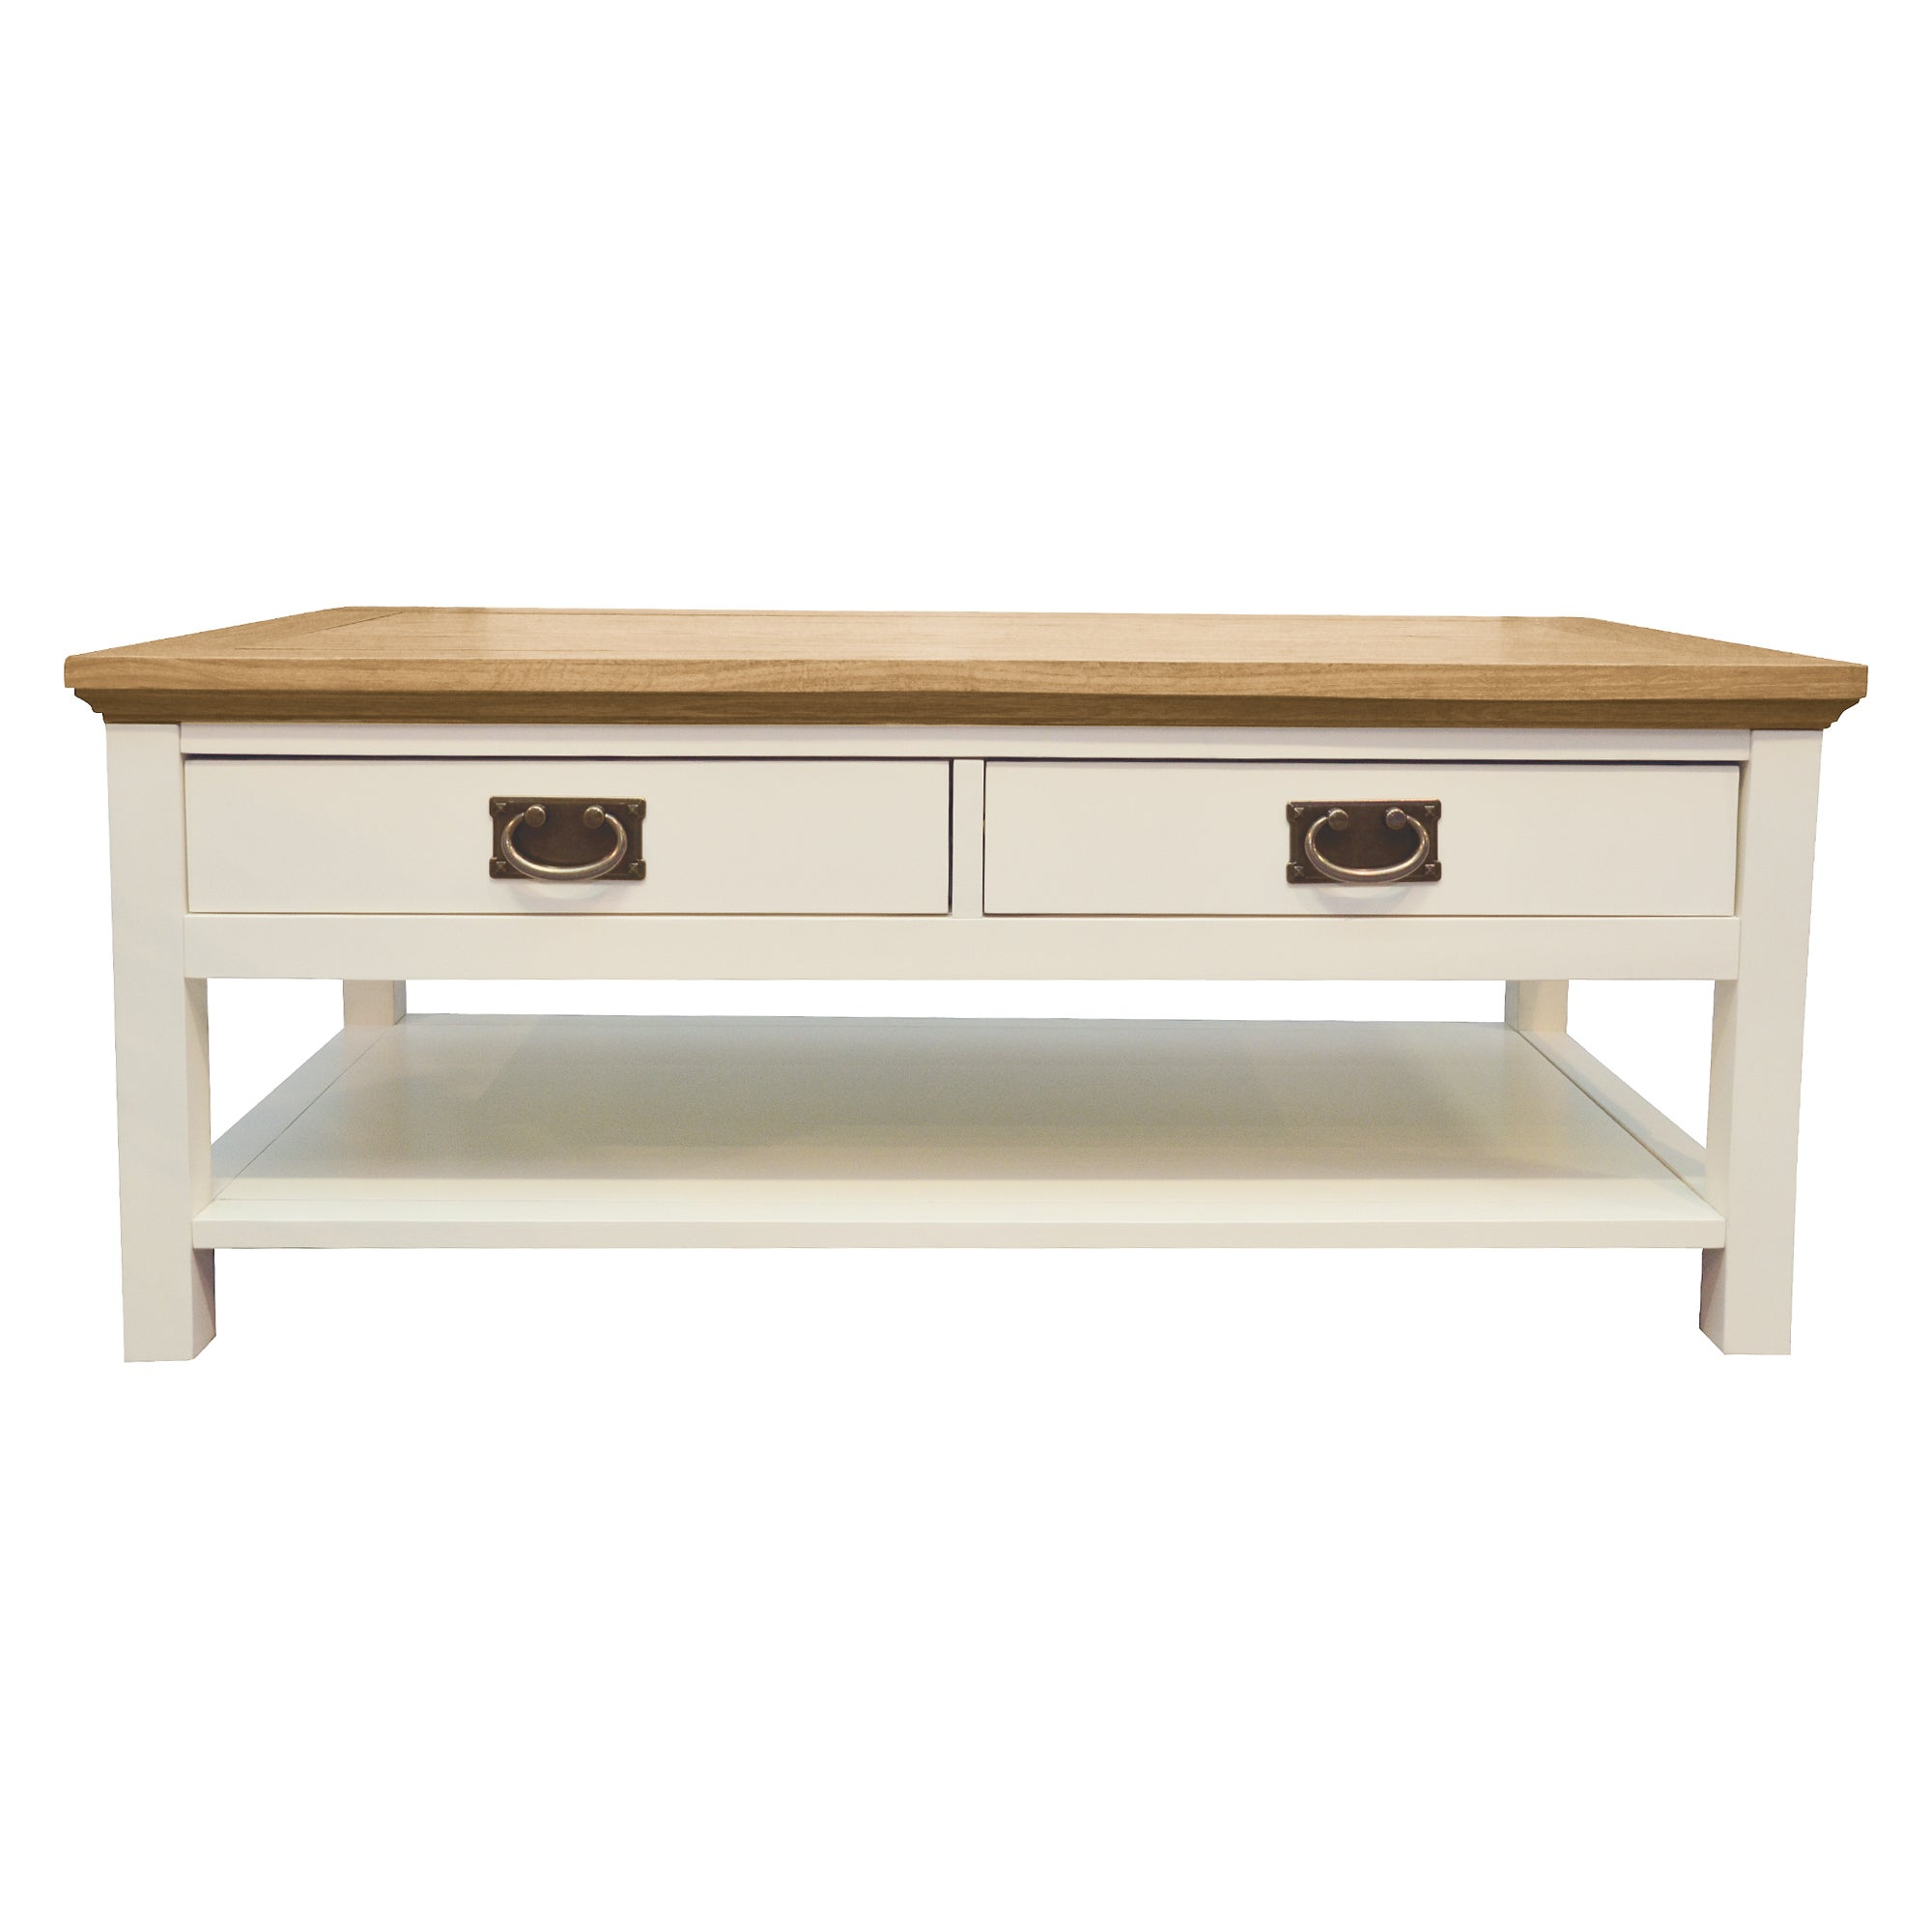 Penzance Oak Two Tone Coffee Table